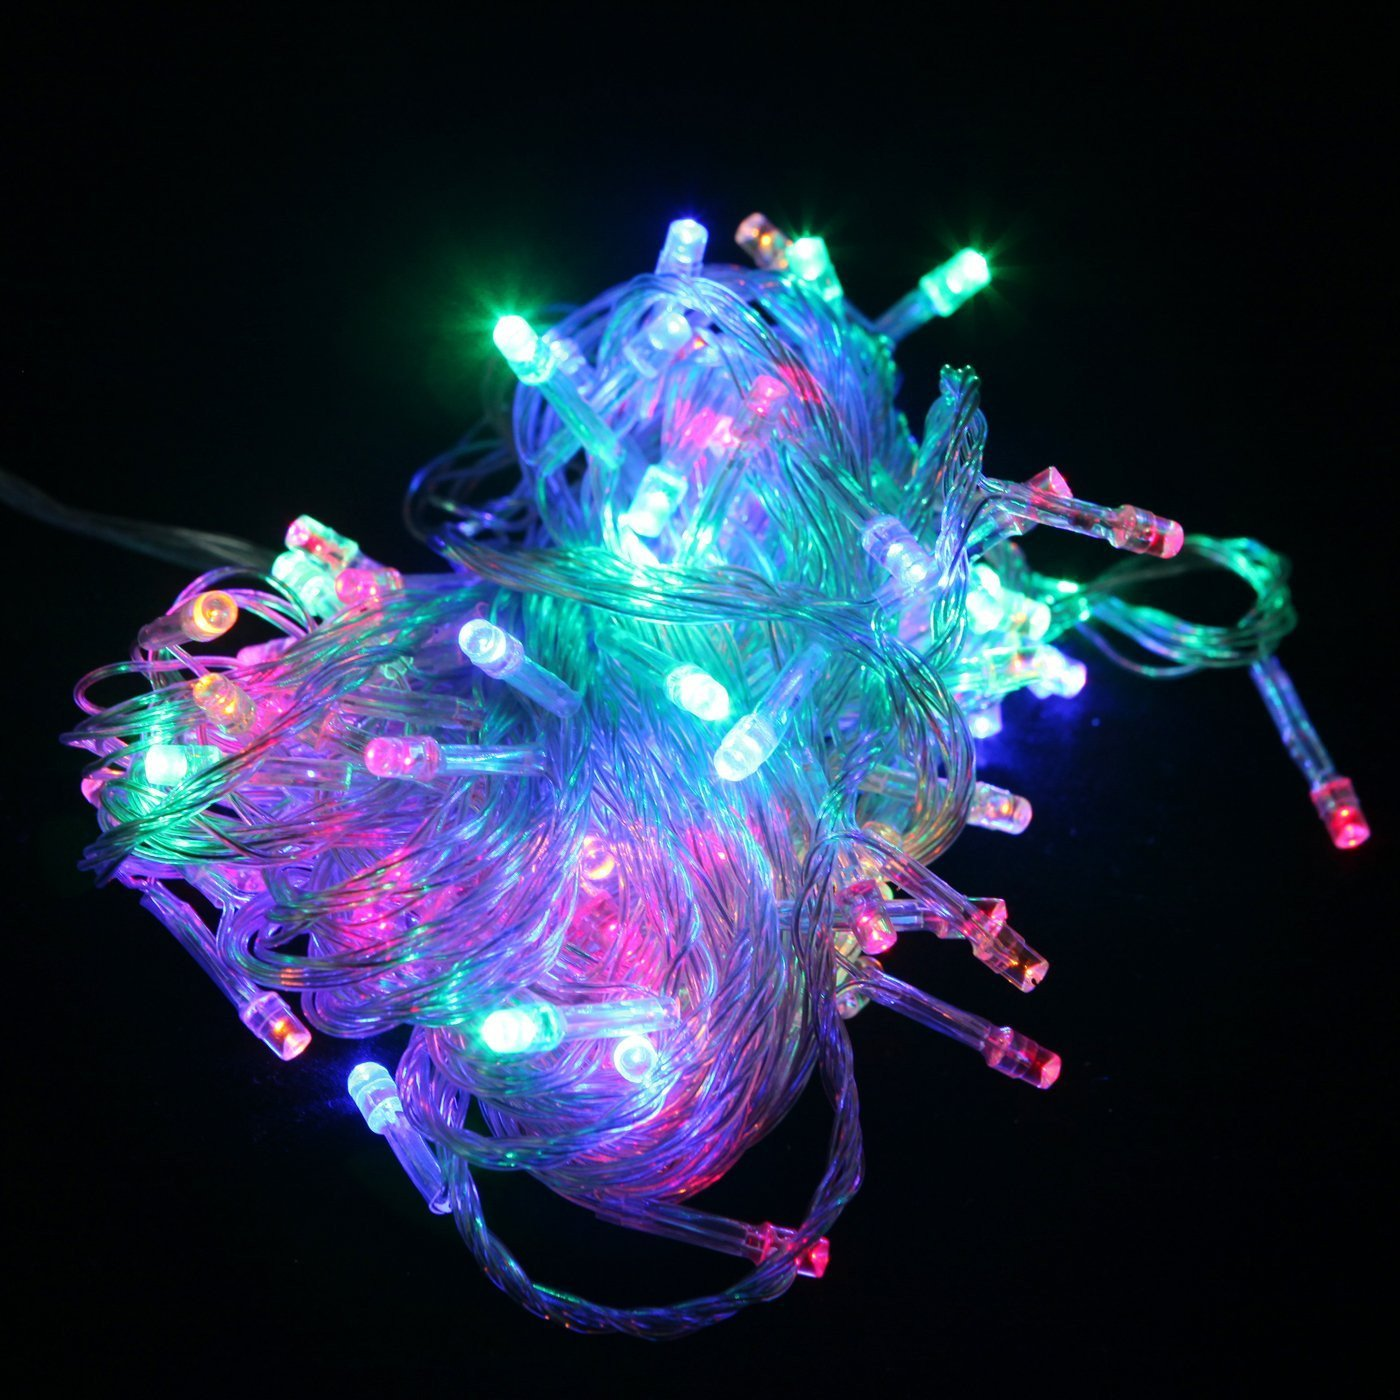 100 LED Indoor Outdoor Window Fairy Boho String Dorm Lights in 9 Colors - GoGetGlam Boho Style